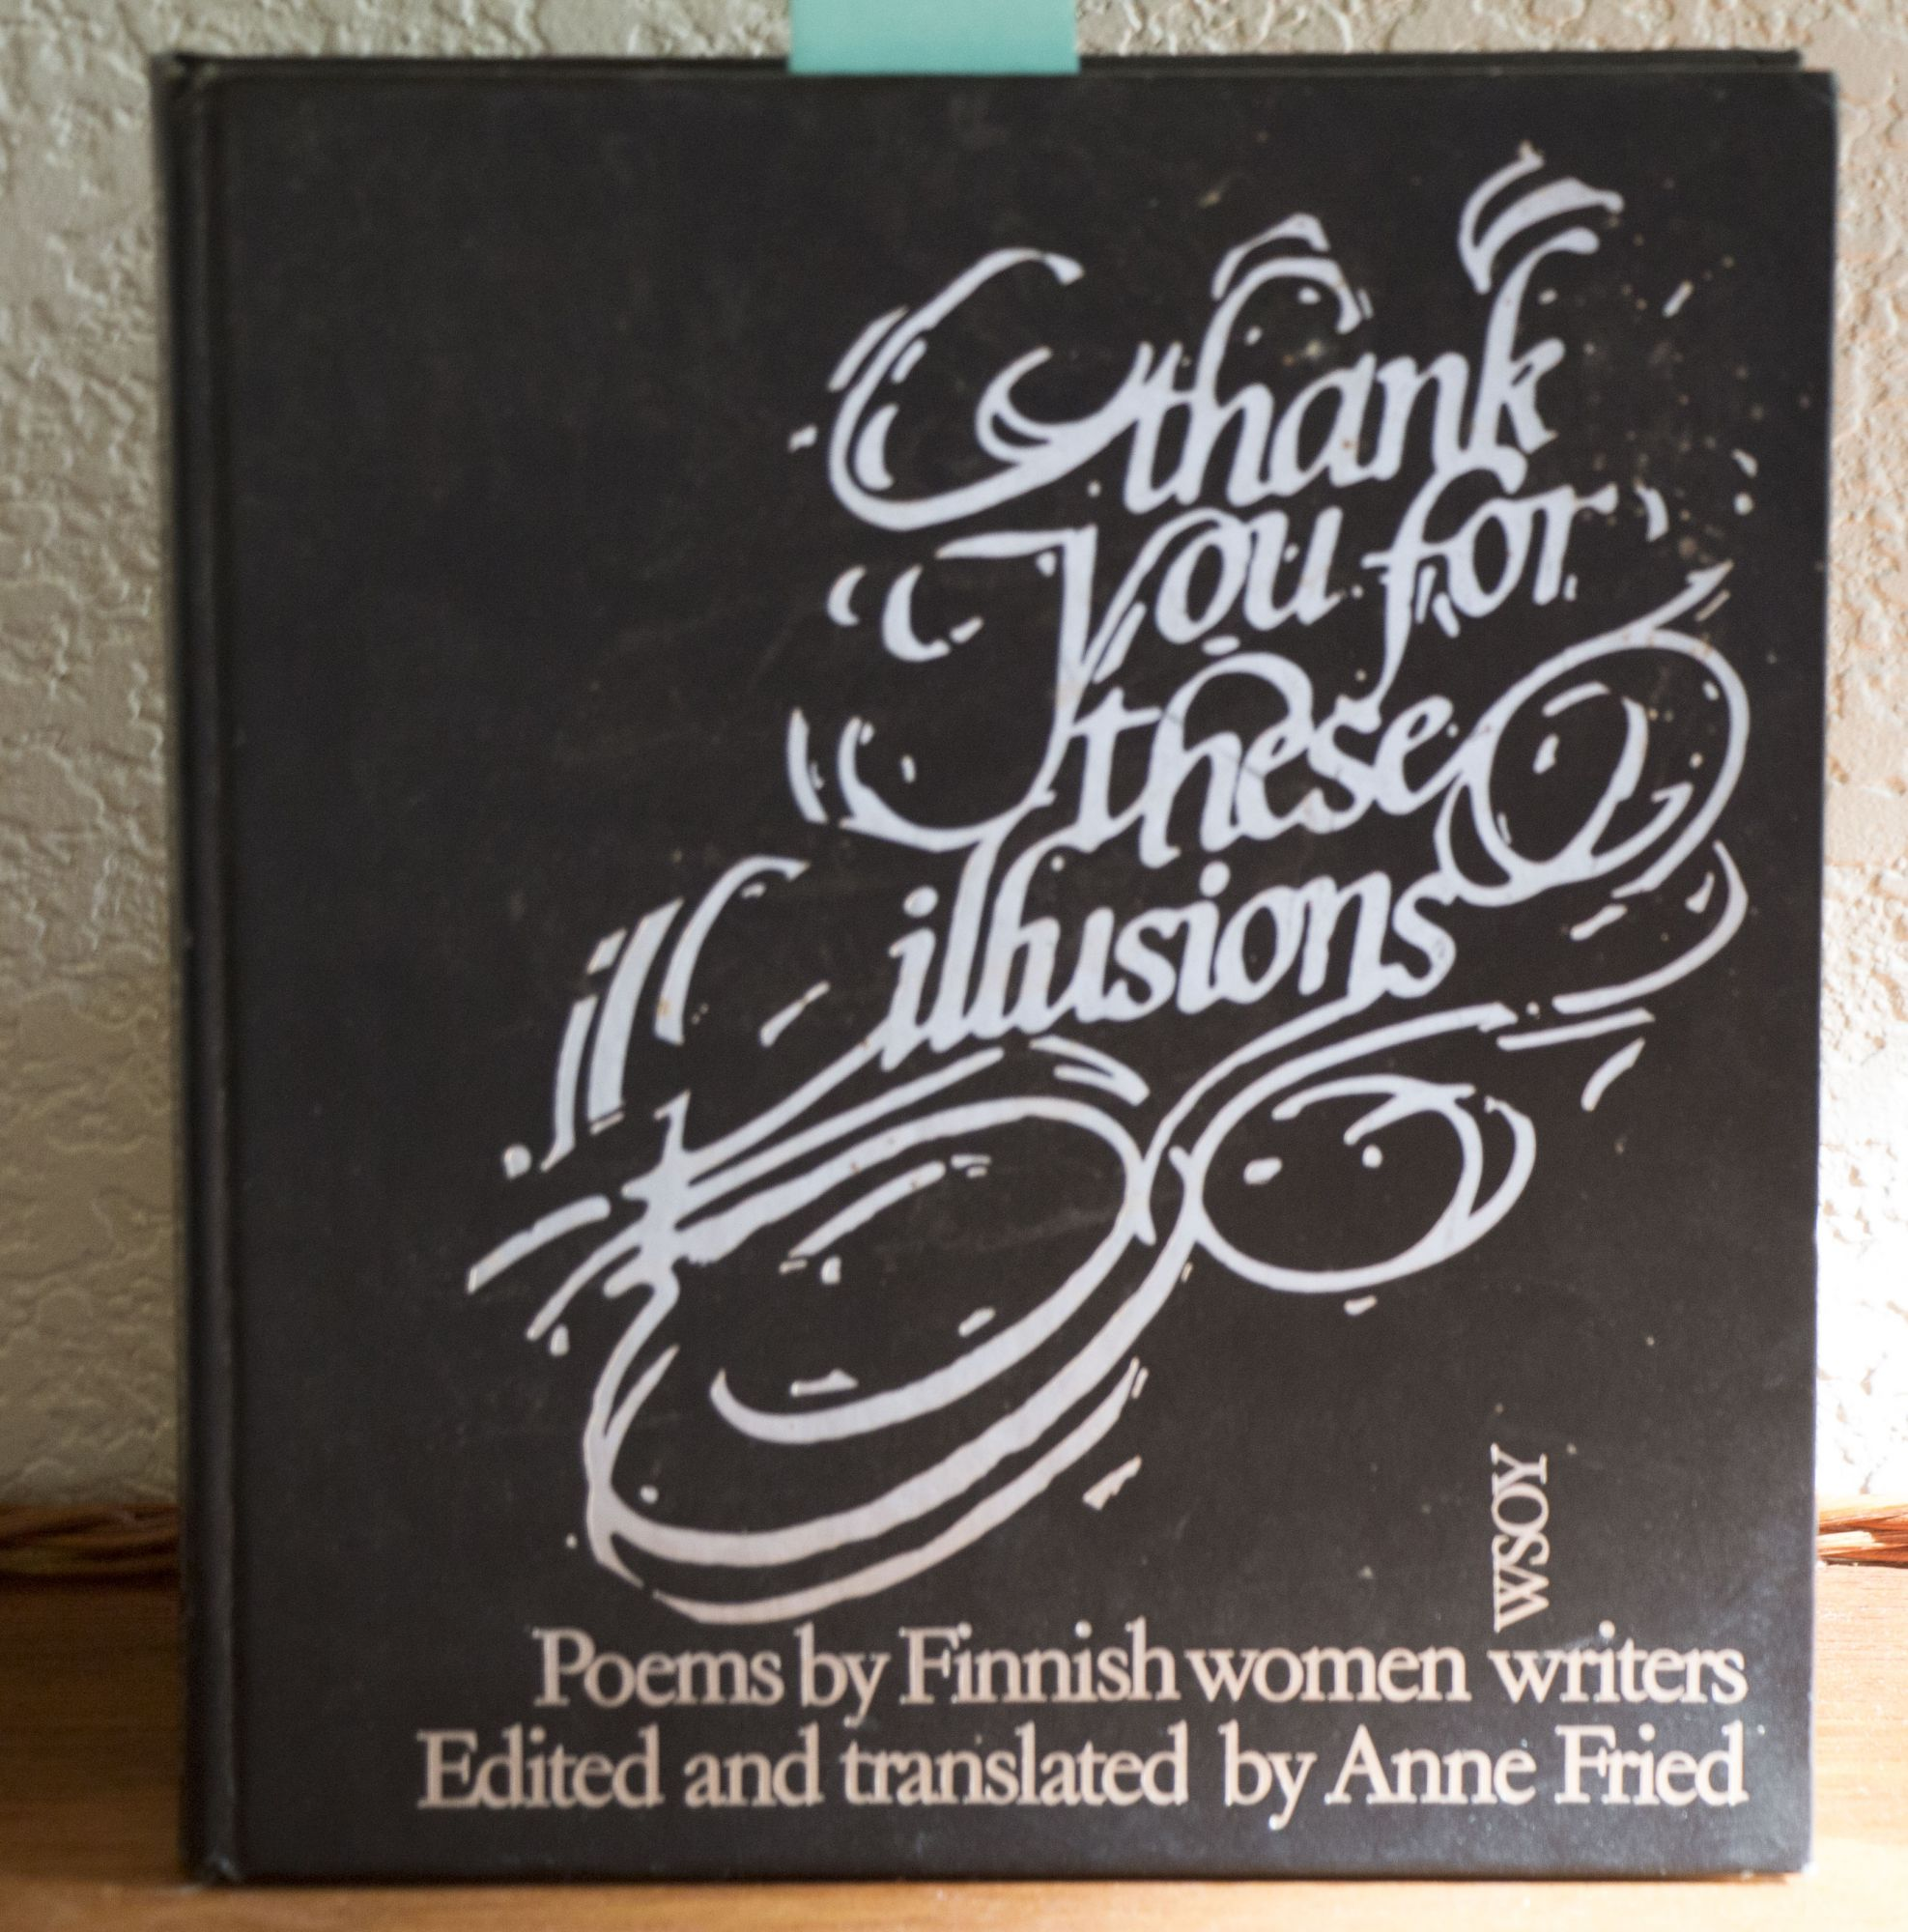 Thank you for these illusions Poems by Finnish women writers